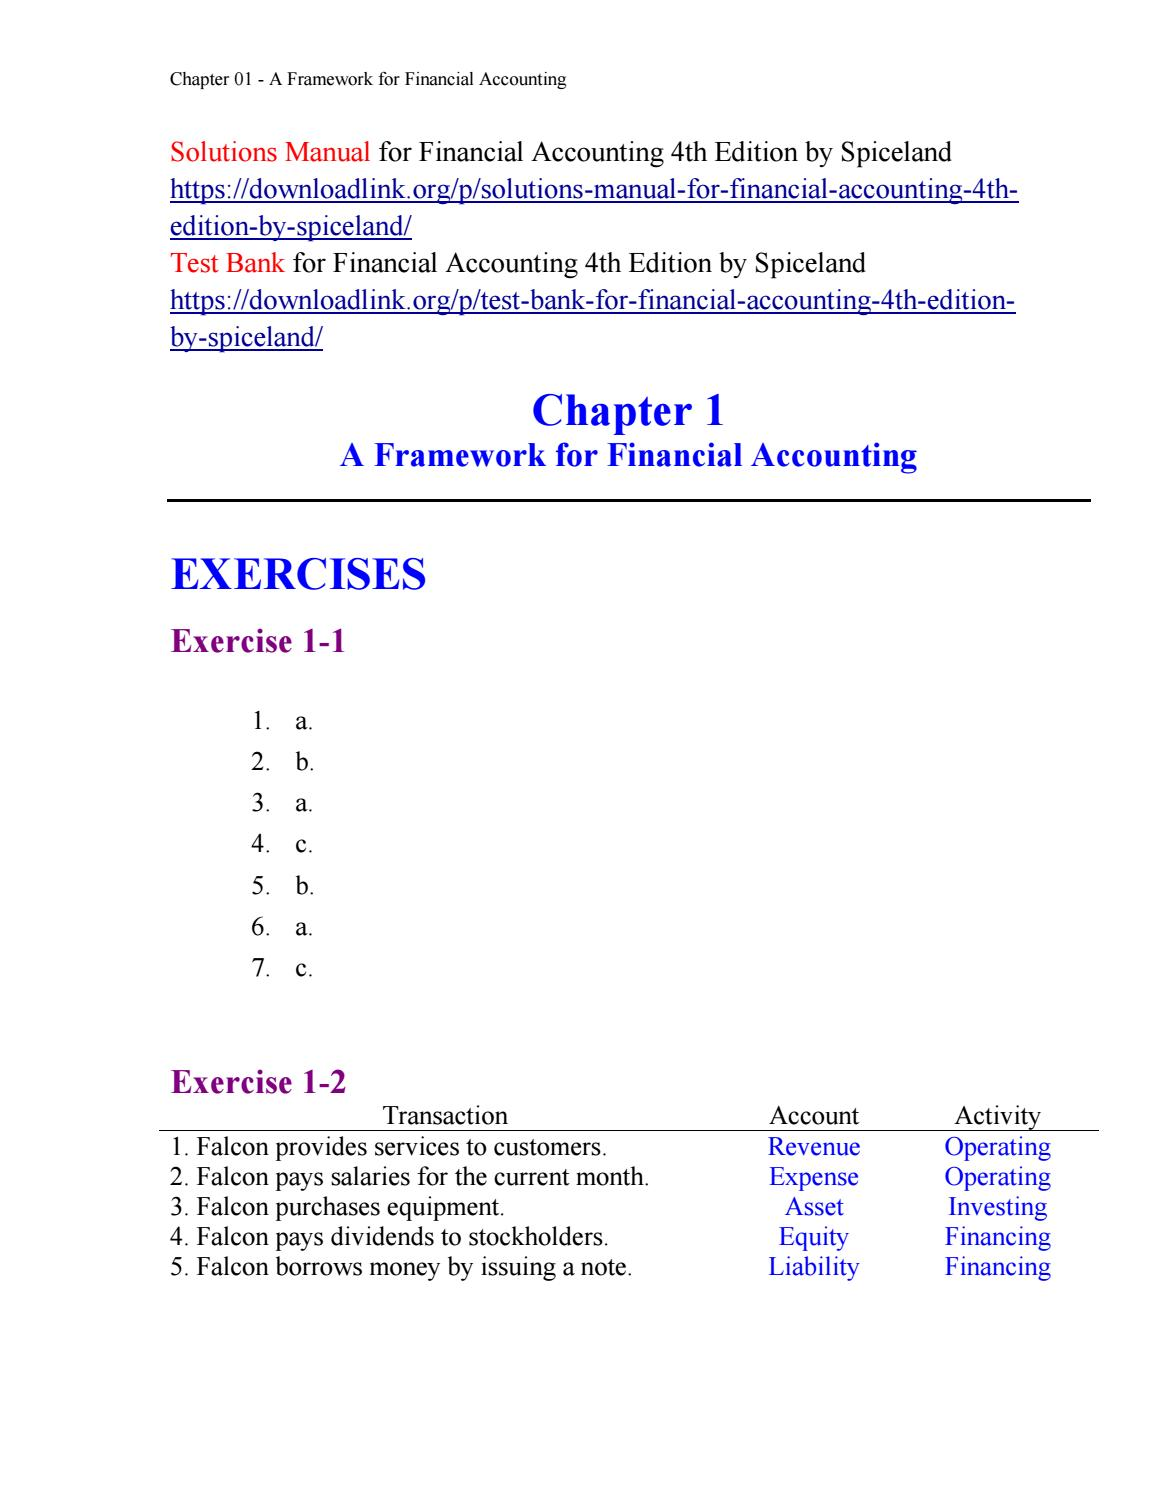 Solutions Manual for Financial Accounting 4th Edition by Spiceland by  drew5454 - issuu